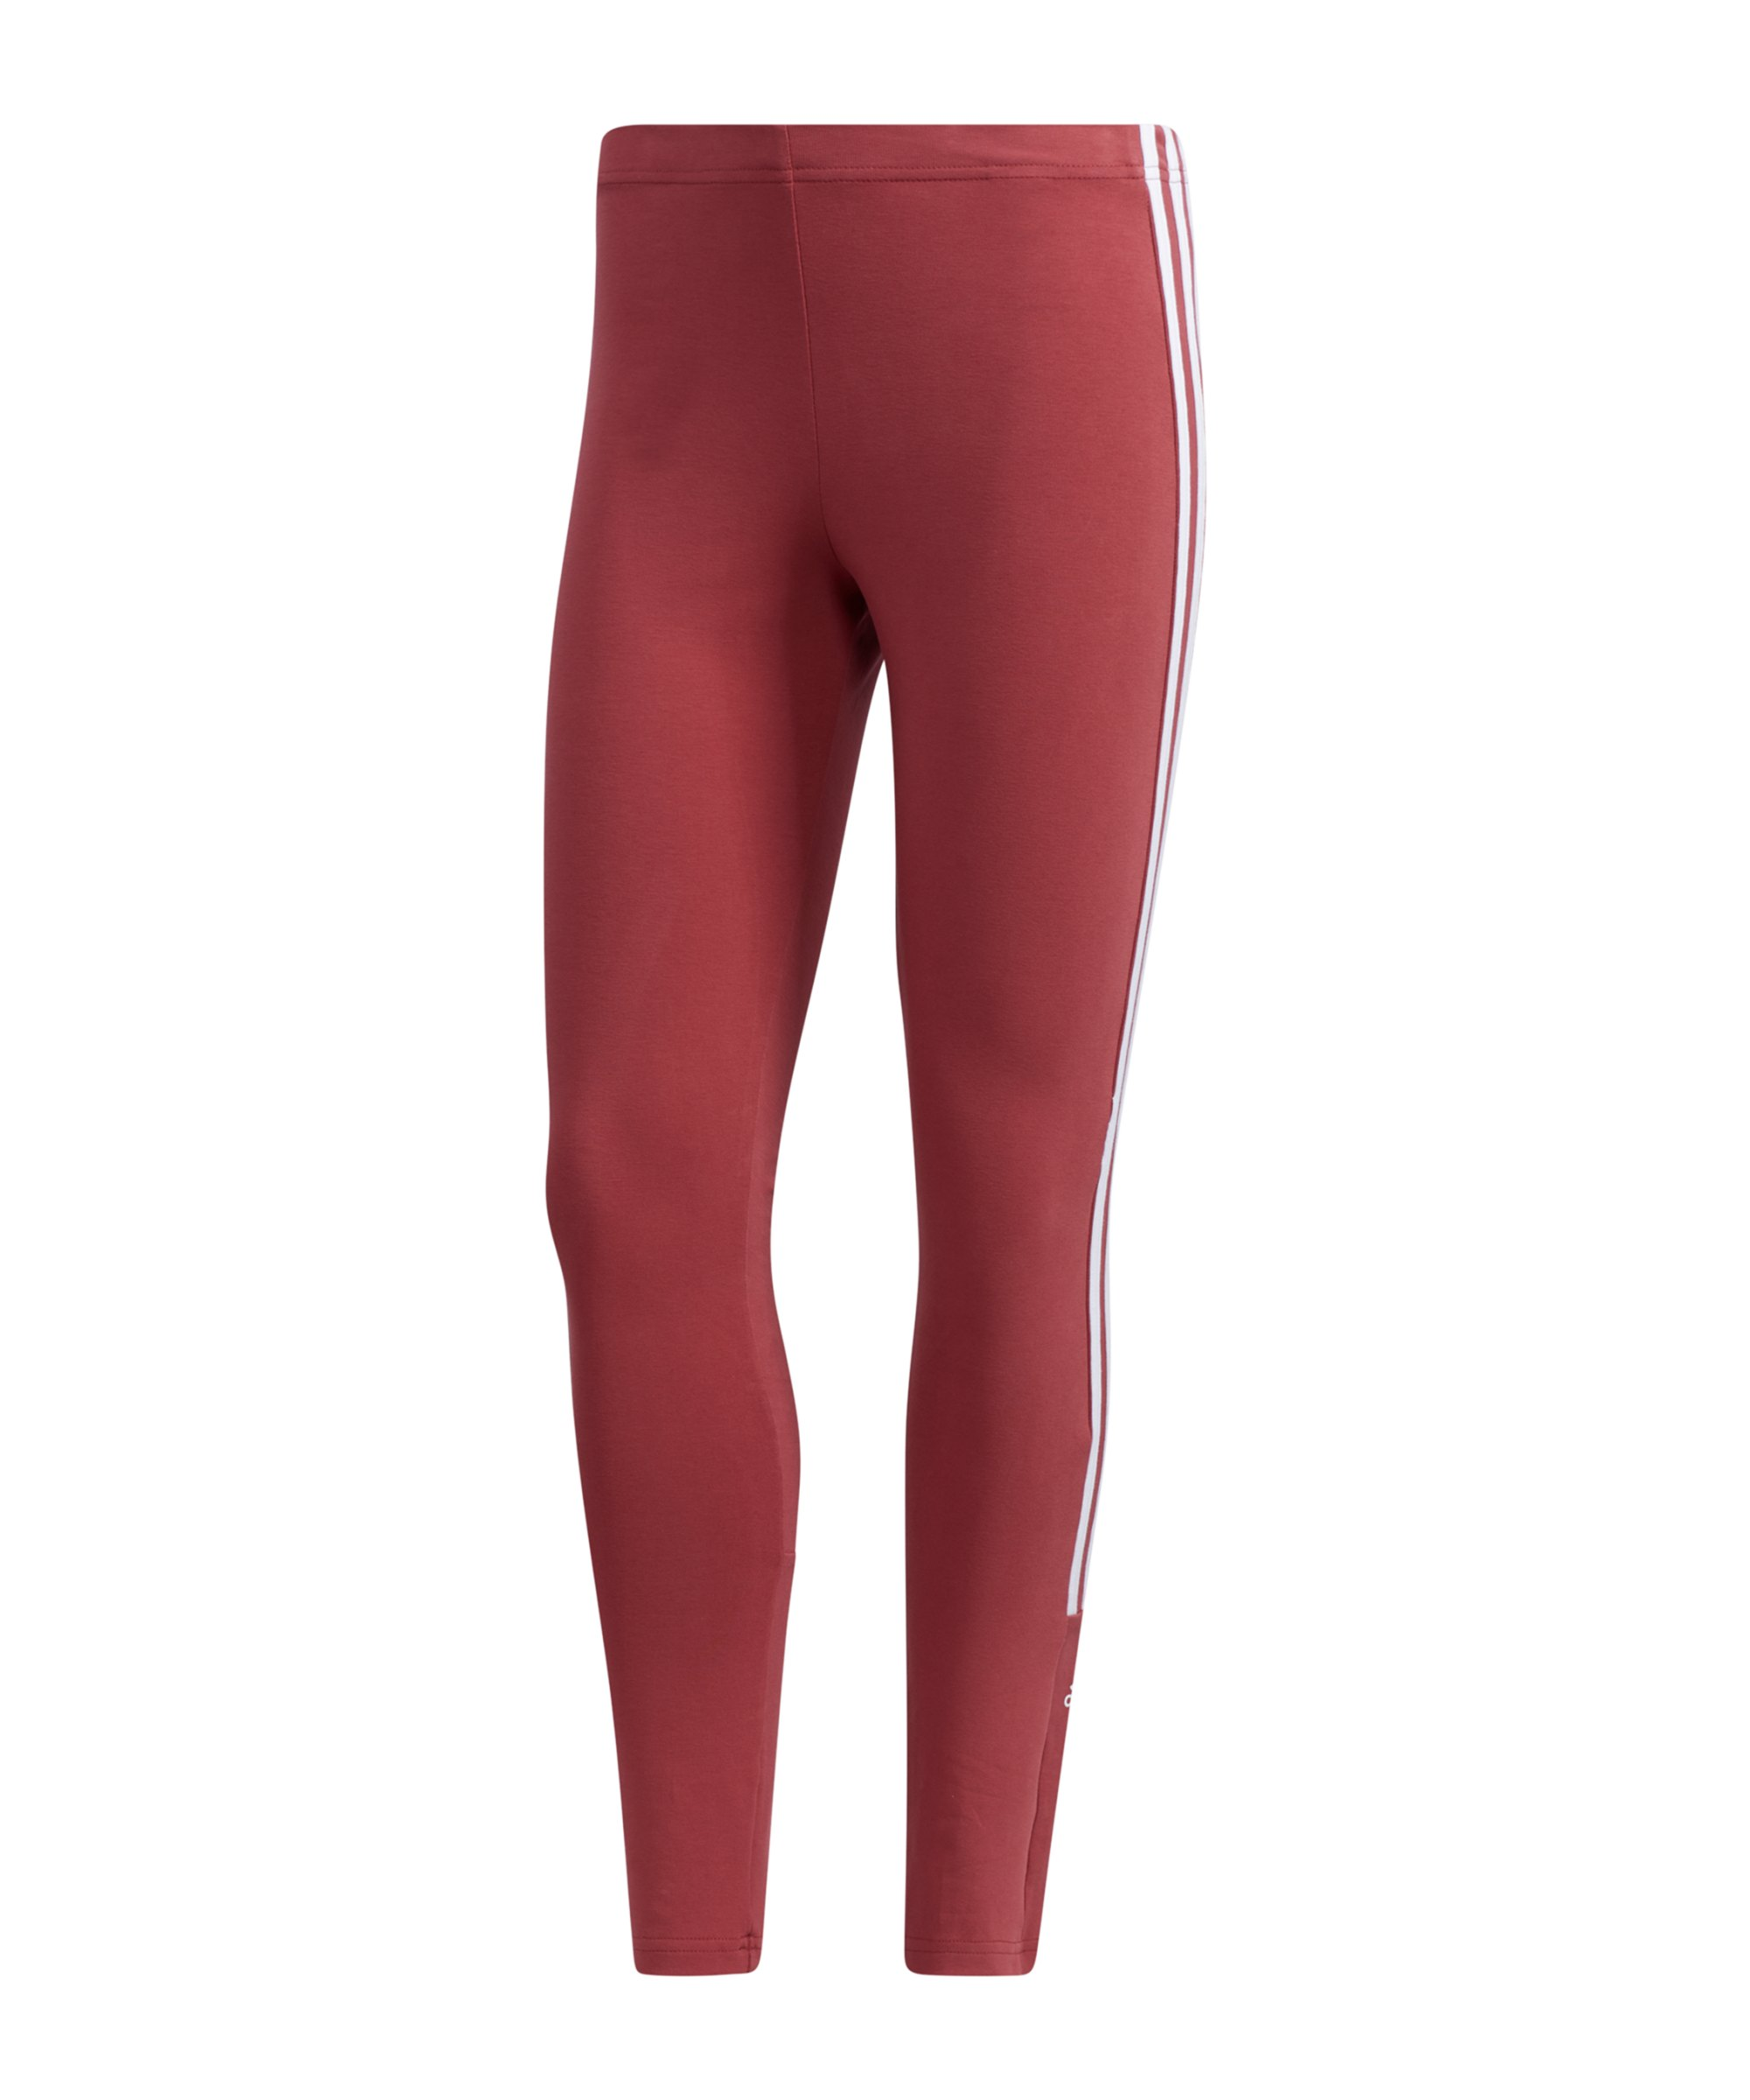 adidas New Authentic 7/8 Tight Damen Rot - rot